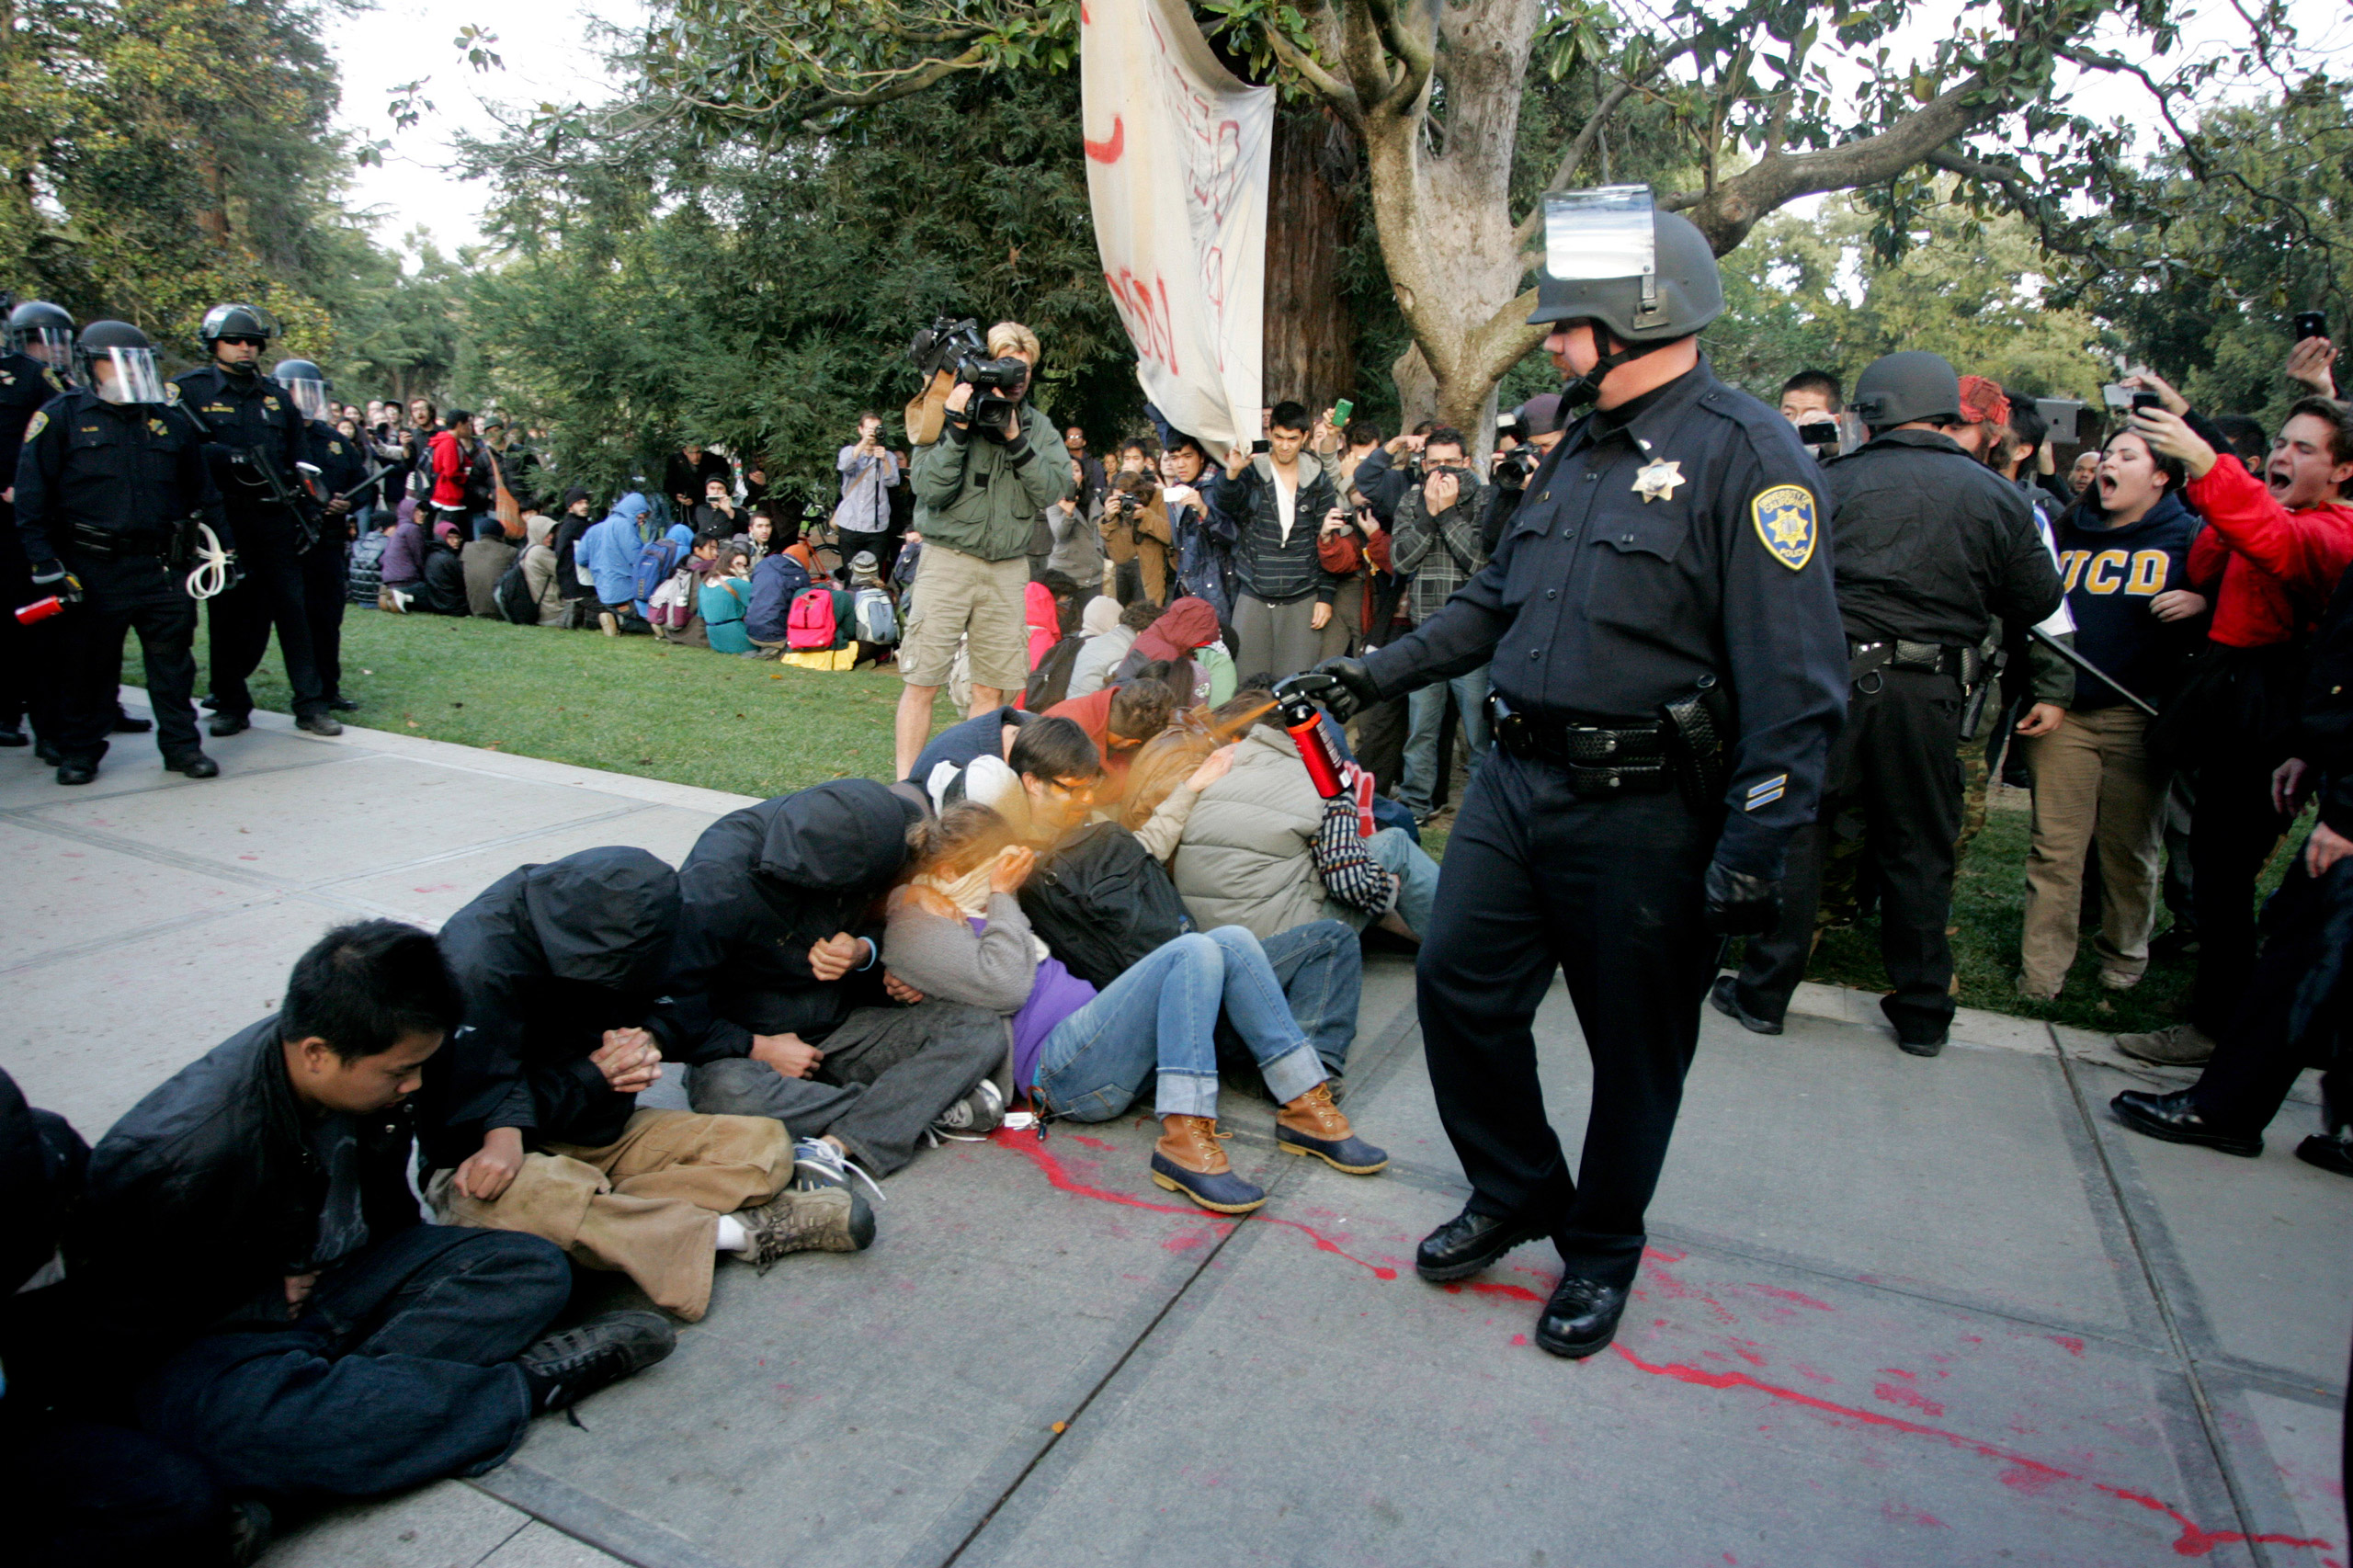 A University of California Davis police officer pepper-sprays students during their sit-in at an  Occupy UCD  demonstration in Davis, California November 18, 2011.  UC Davis Chancellor Linda Katehi apologized to jeering students on November 21 for police use of pepper spray against campus protesters in a standoff captured by video and widely replayed on television and the Internet. Faculty and student critics of Friday's confrontation, some of whom demanded the chancellor's resignation, said it had damaged the school's image and the climate for free expression at the university. Photo taken November 18, 2011.  REUTERS/Brian Nguyen  (UNITED STATES - Tags: CIVIL UNREST EDUCATION CRIME LAW TPX IMAGES OF THE DAY) - RTR2UCTQ